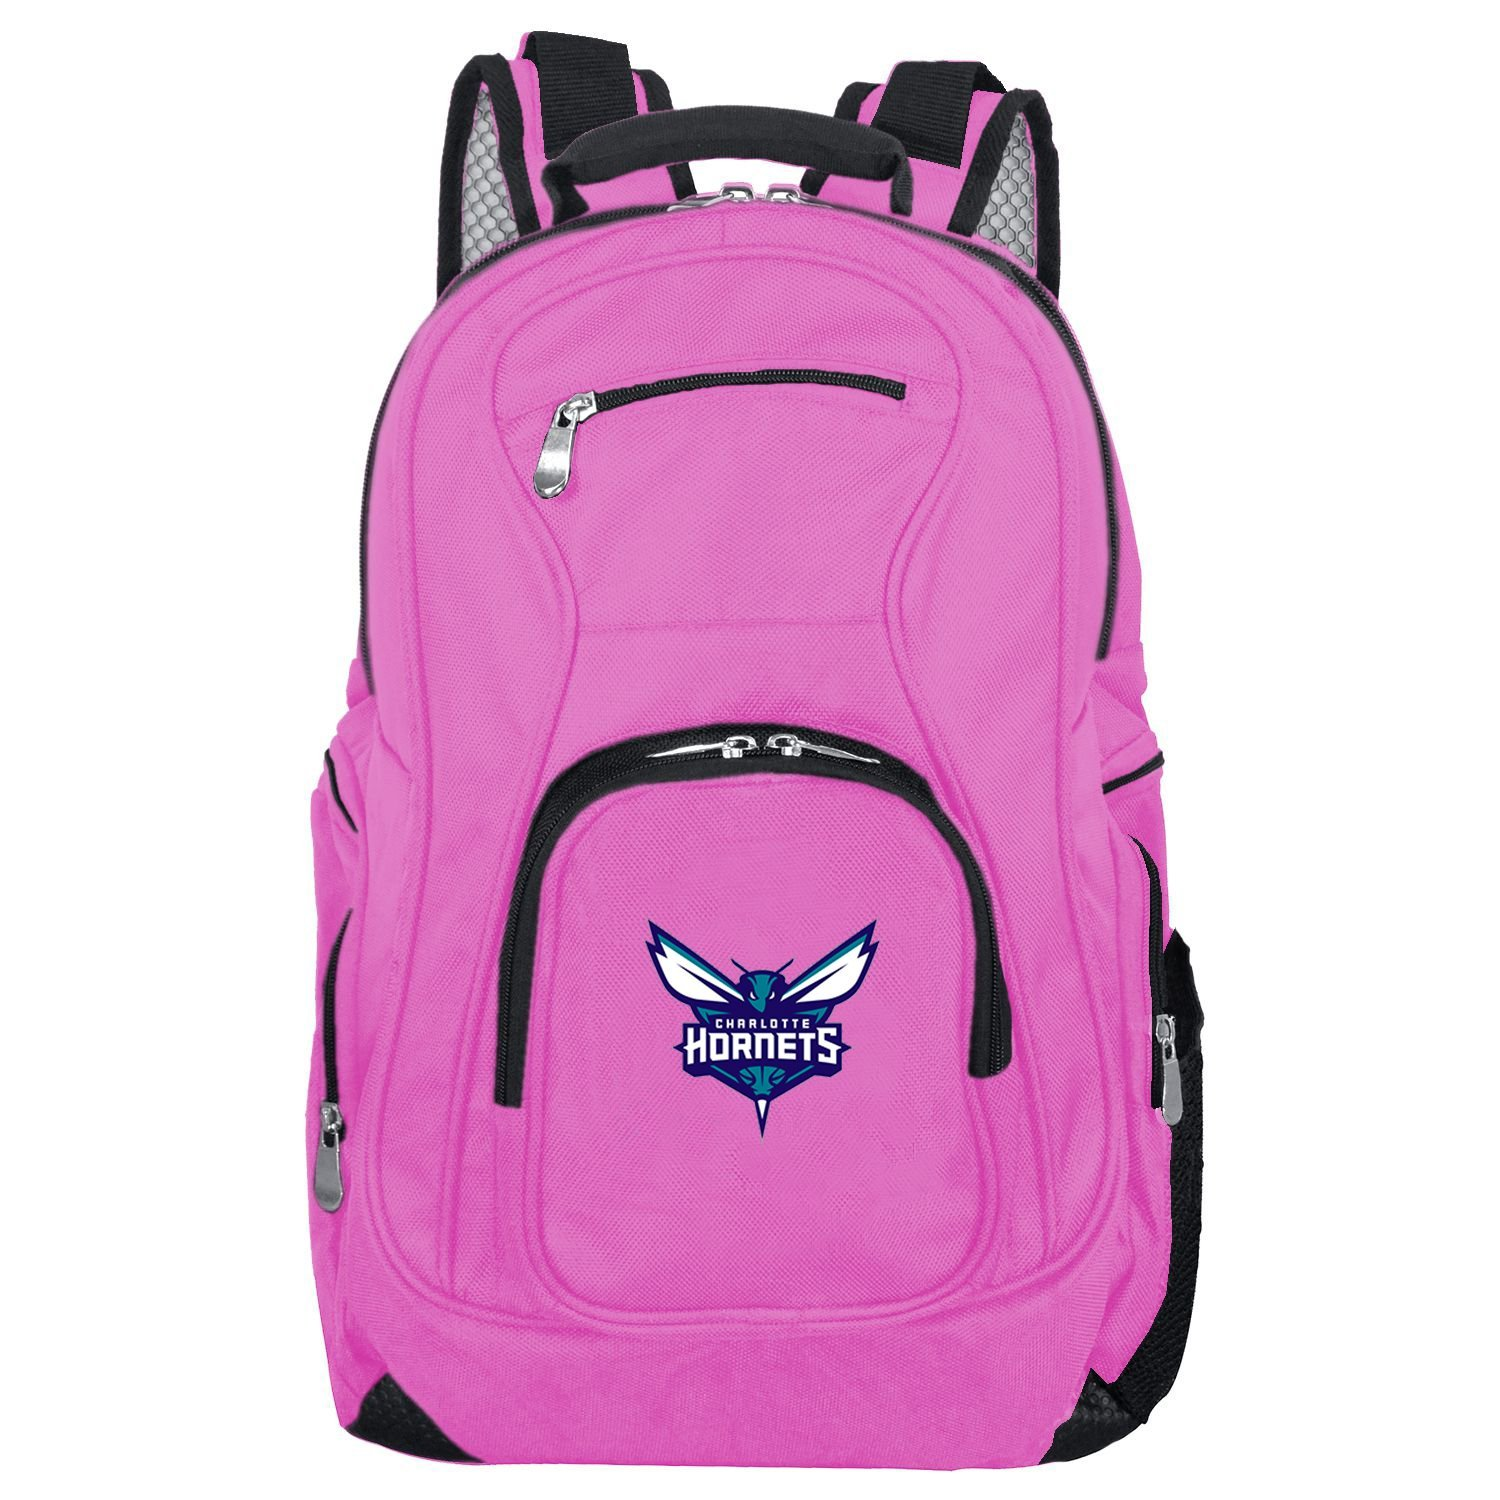 NBA Charlotte Hornets Voyager Laptop Backpack, 19-inches, Pink